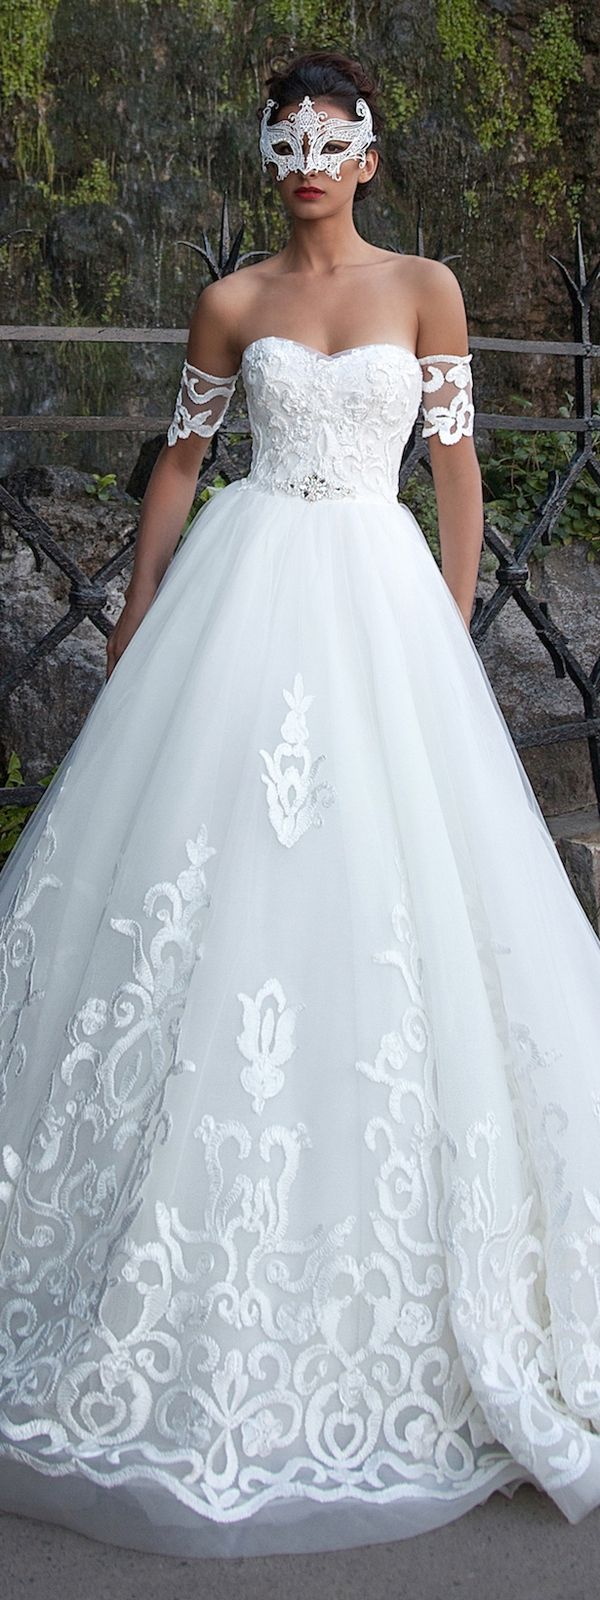 286 best Wedding dresses images by Carol Robinson-Brutus on ...